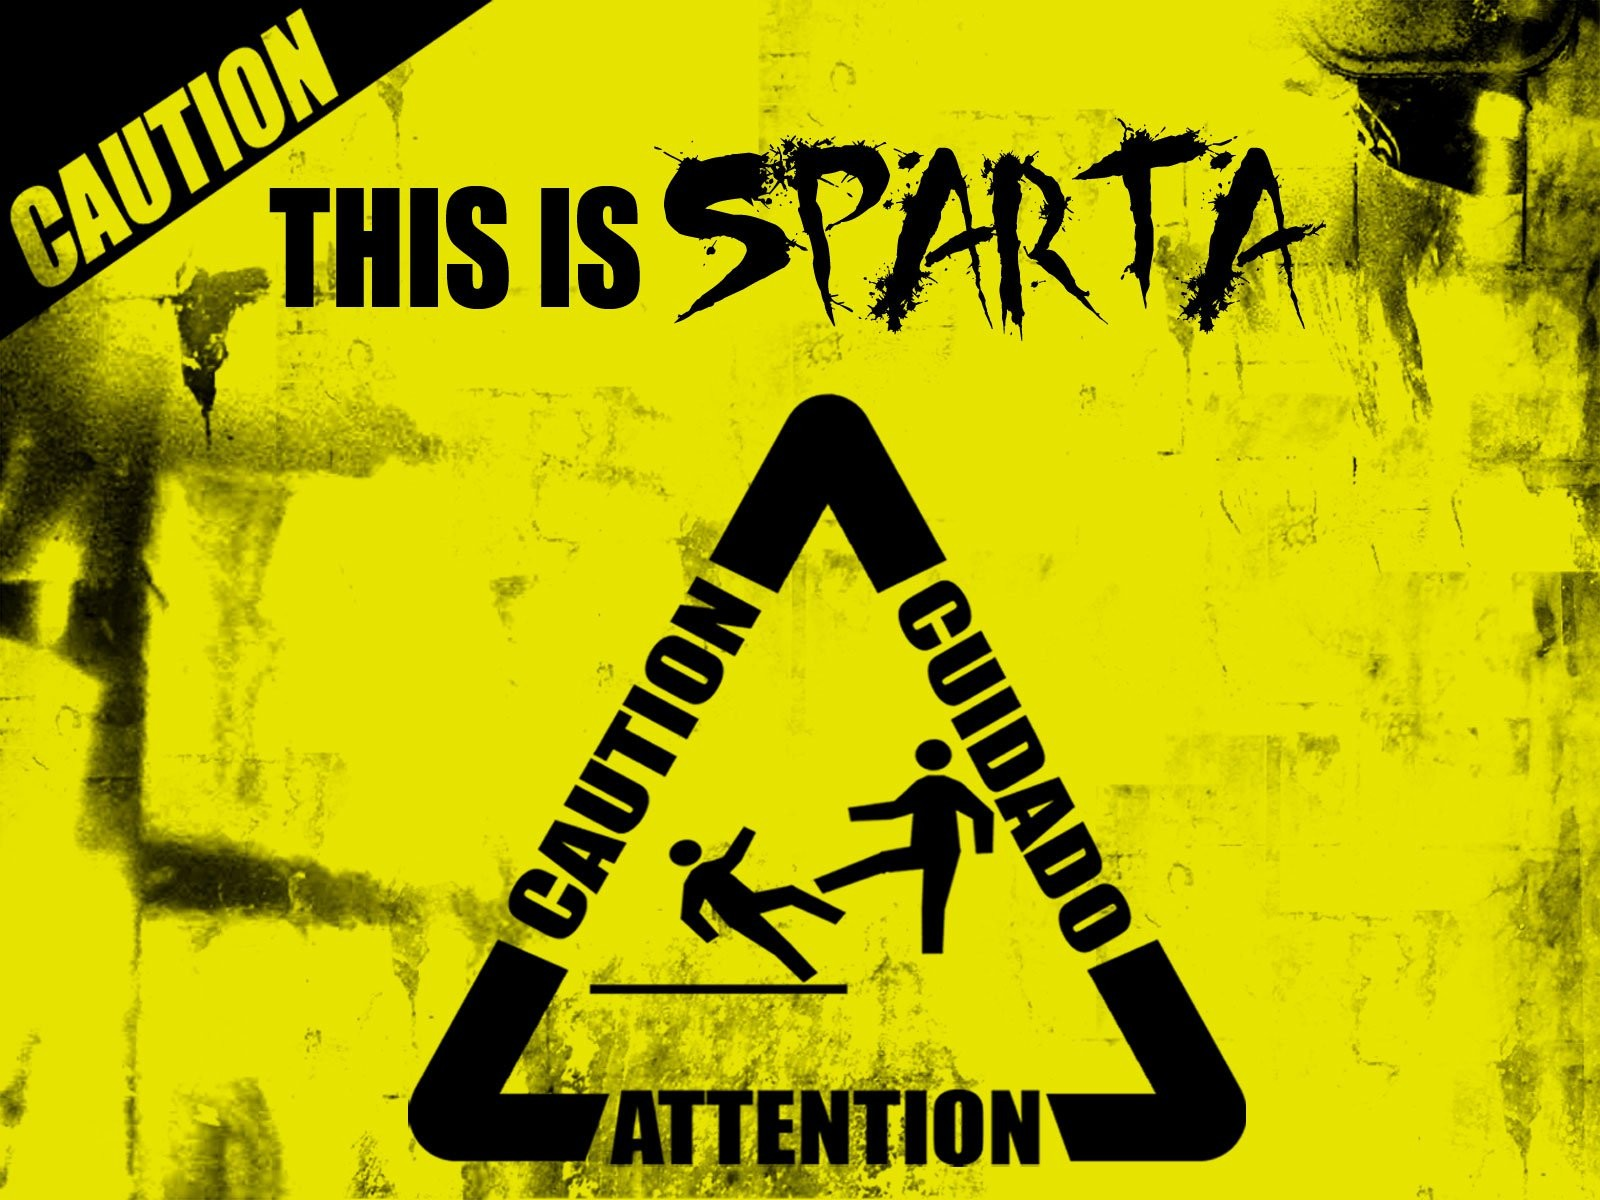 Abstract 300 (movie) Sparta signs caution wallpaper ...